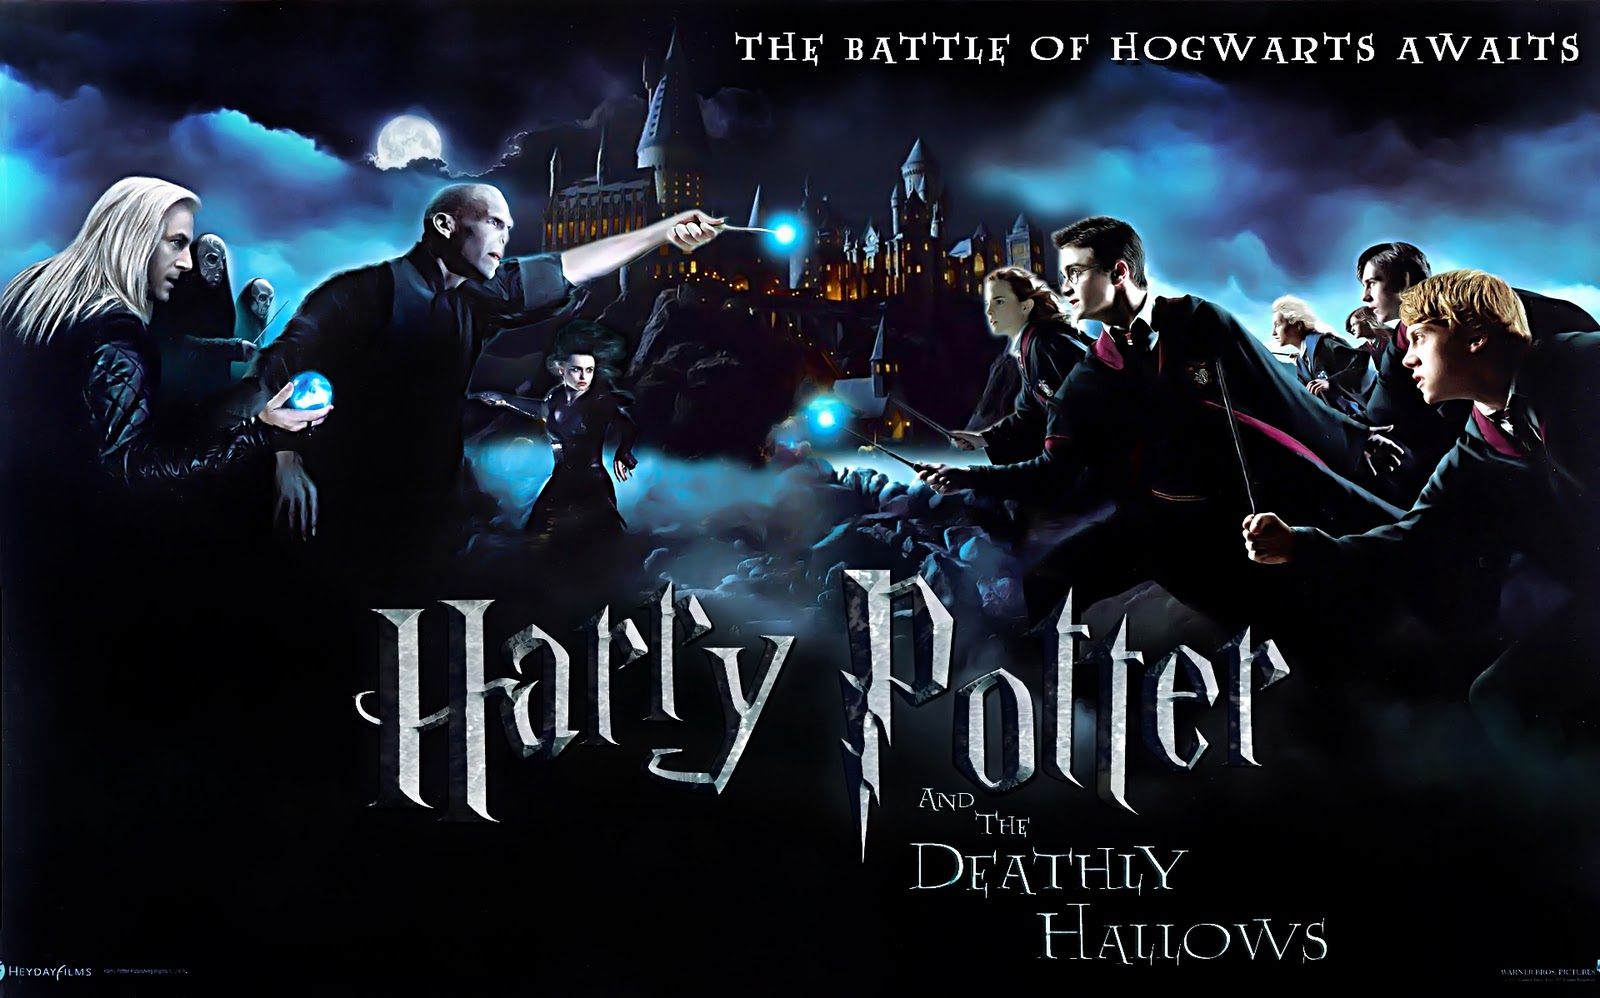 Wallpapers Harry Potter and the Deathly Hallows wallpapers 1600x998